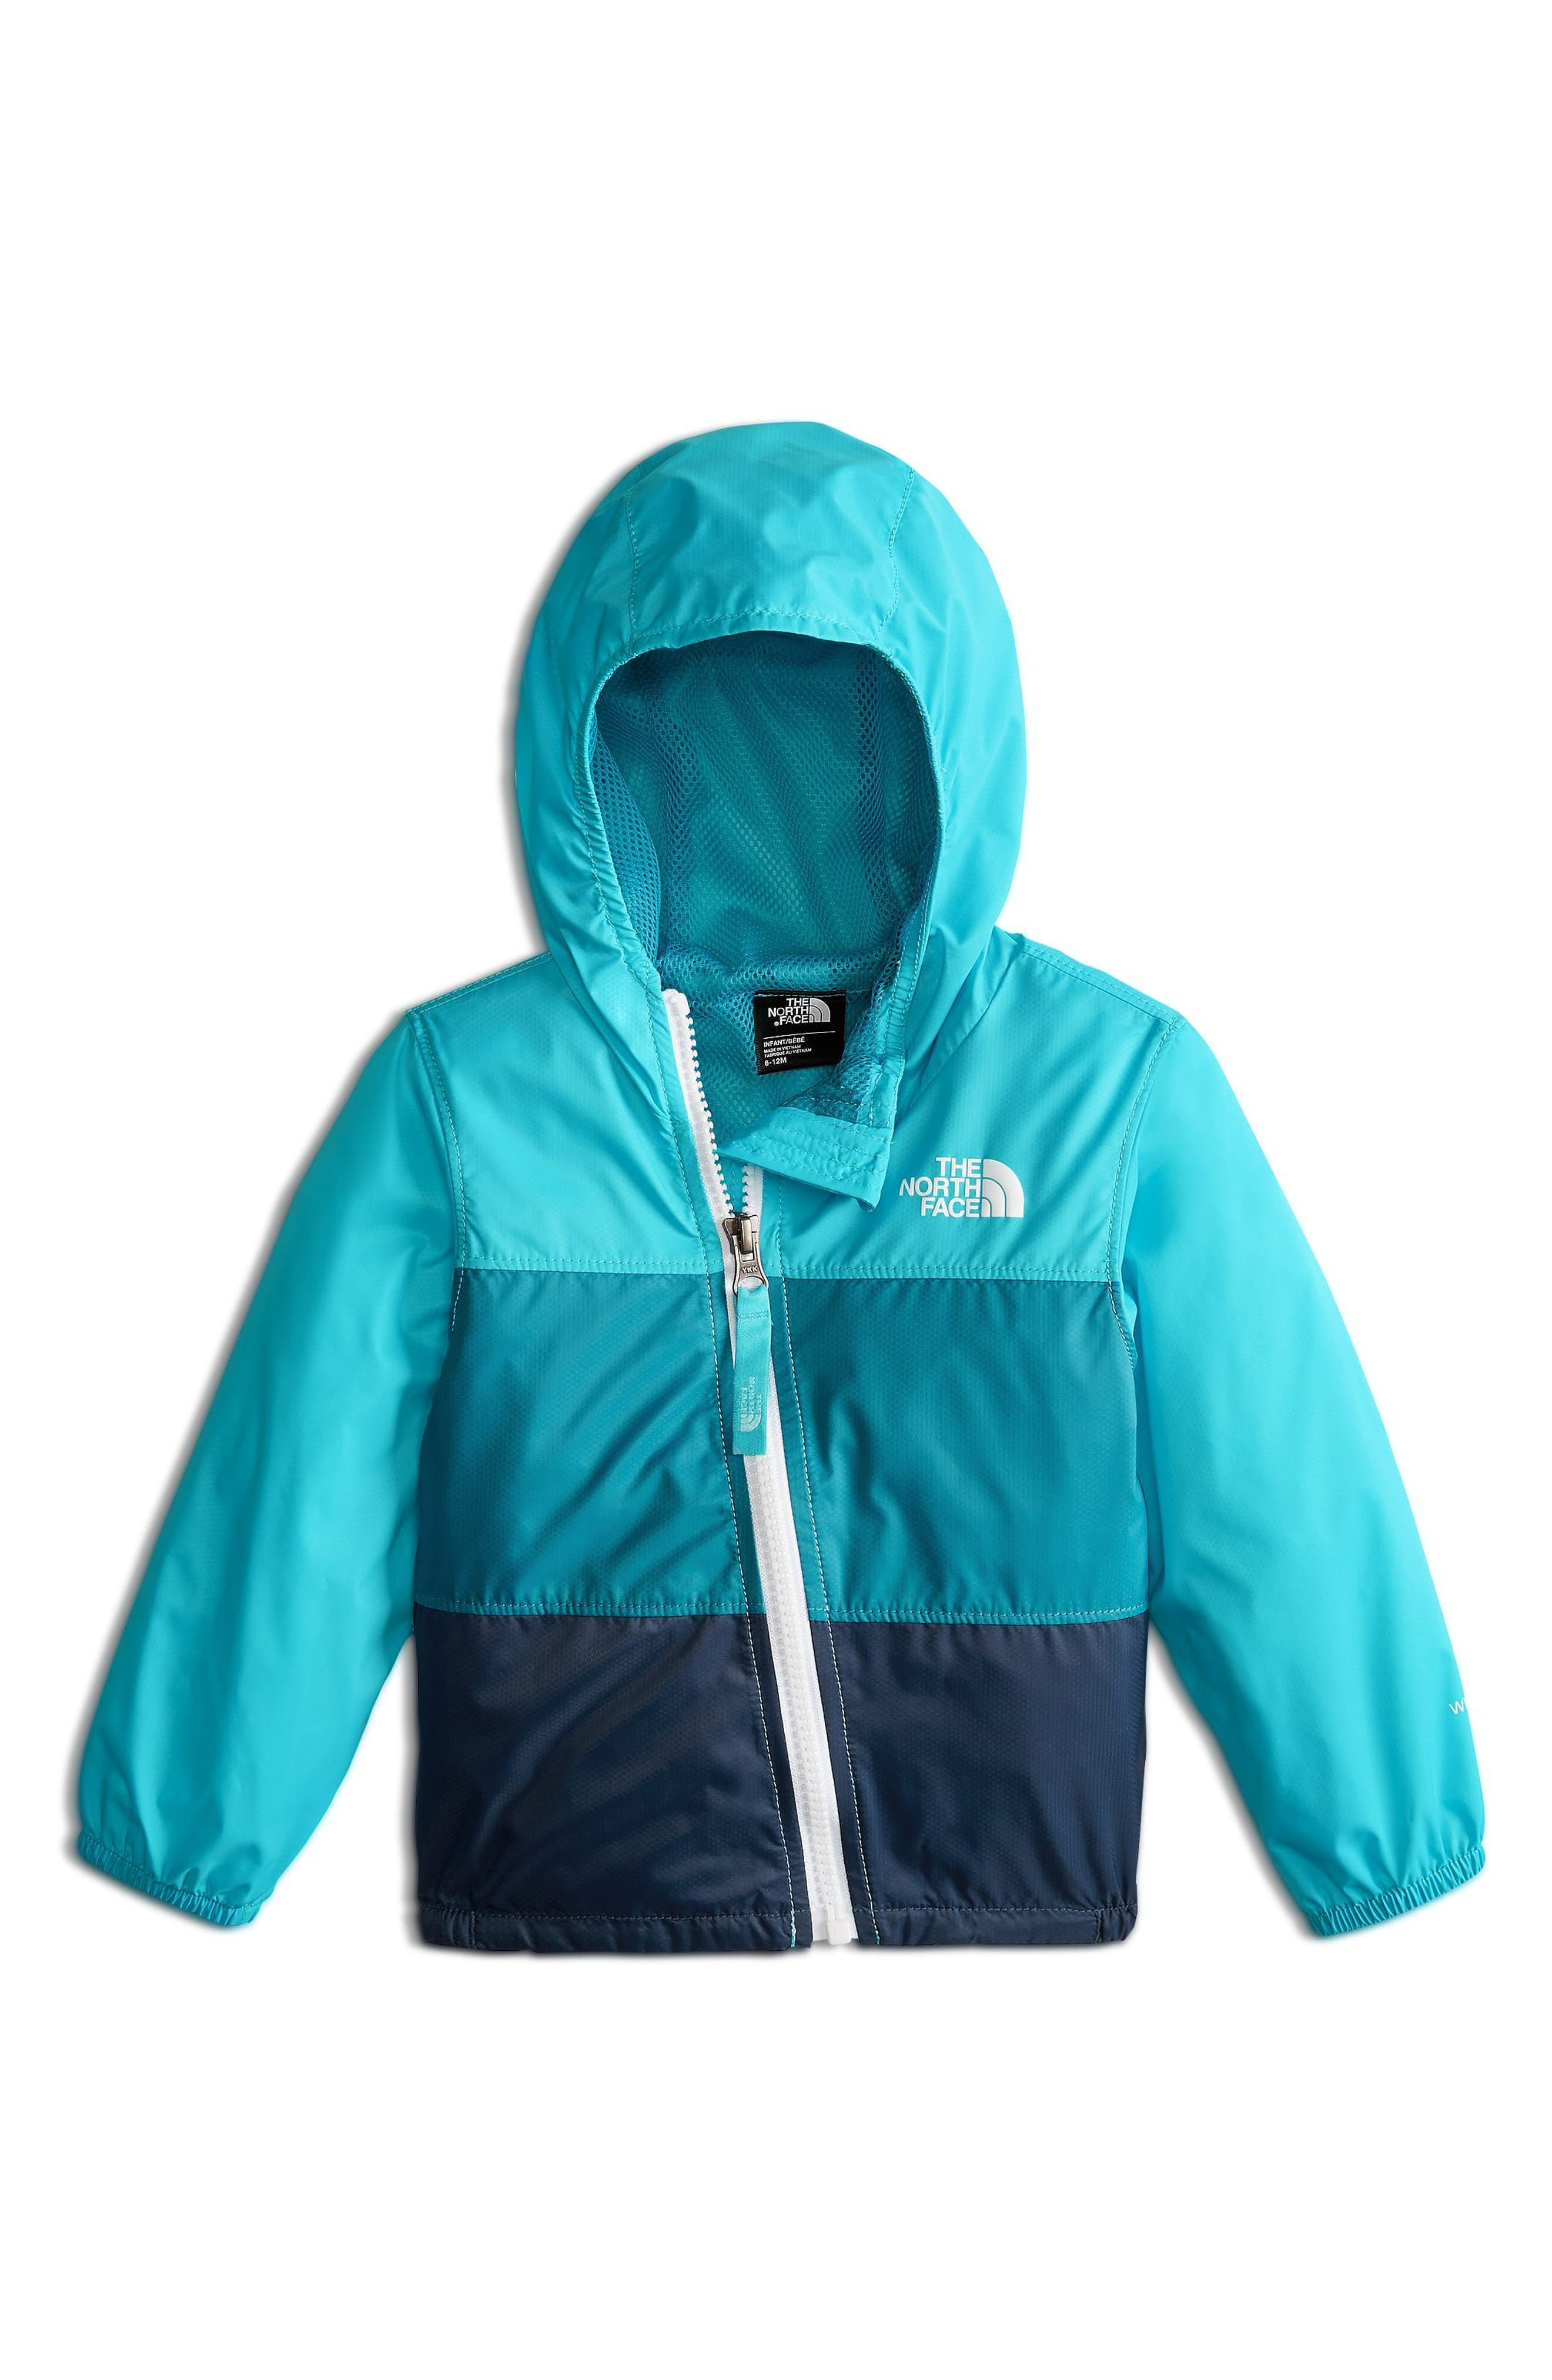 THE NORTH FACE,                             Flurry Hooded Windbreaker,                             Main thumbnail 1, color,                             400